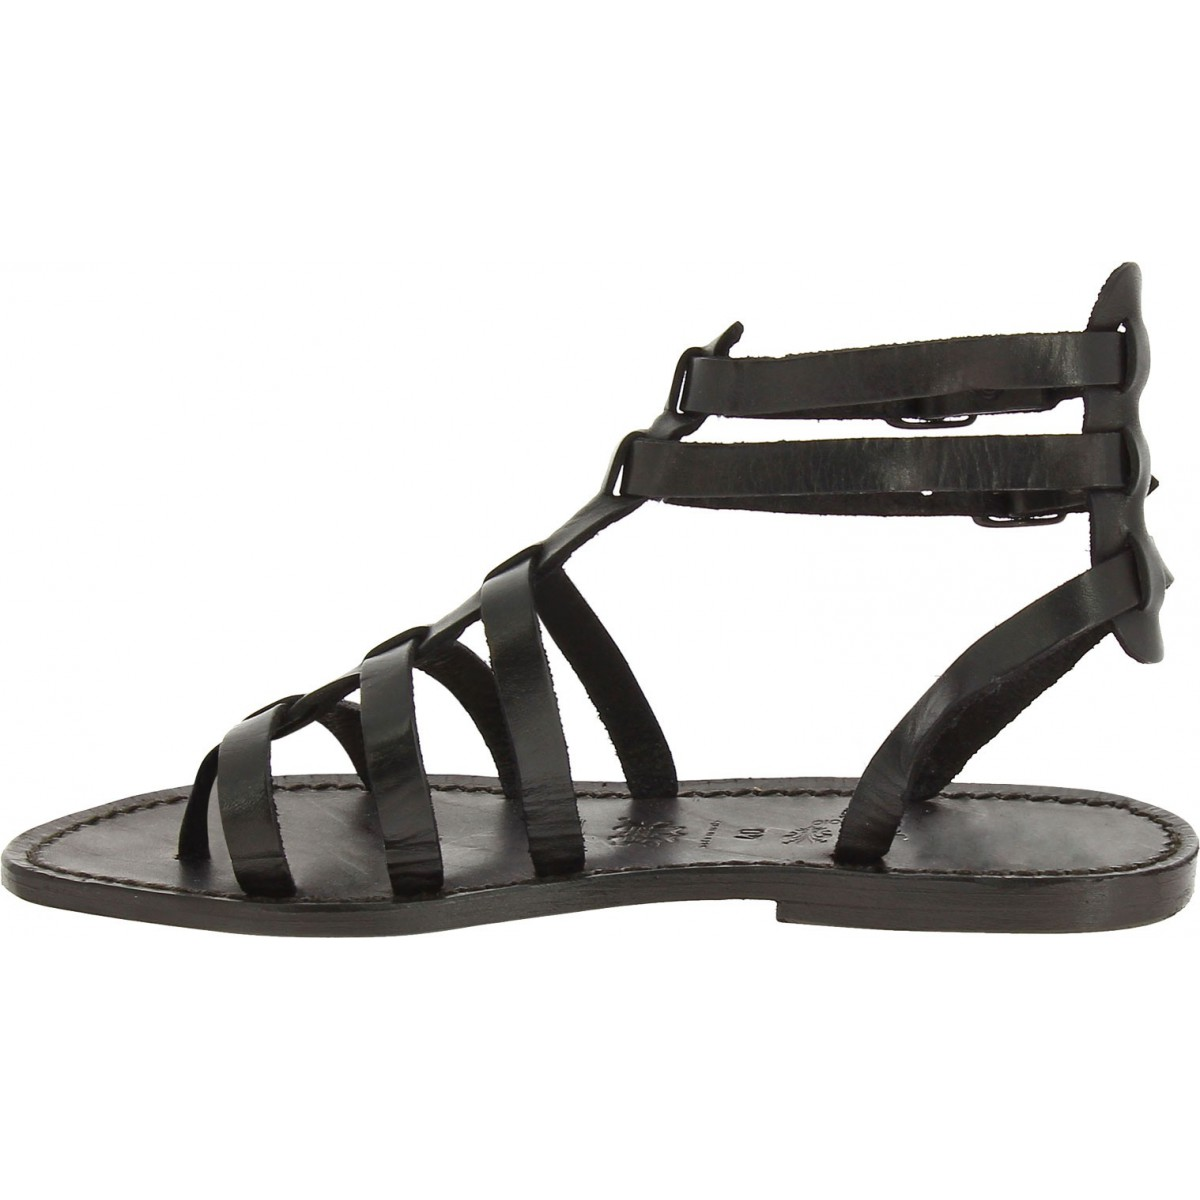 53be9019fe9b ... Black gladiator sandals for women real leather Handmade in Italy ...